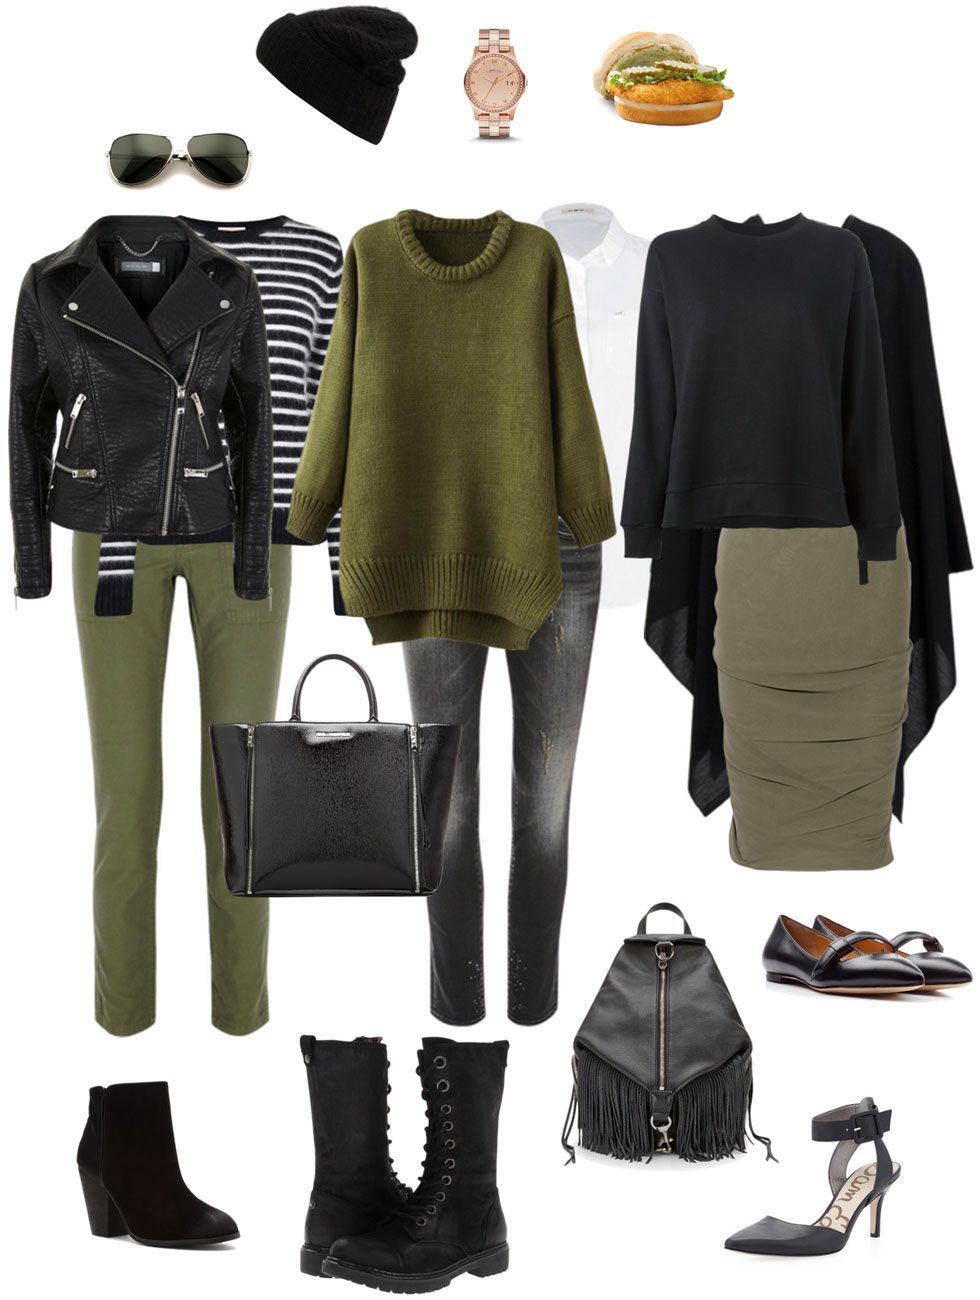 Ensemble Olive And Black Olive Clothing Green Pants Outfit